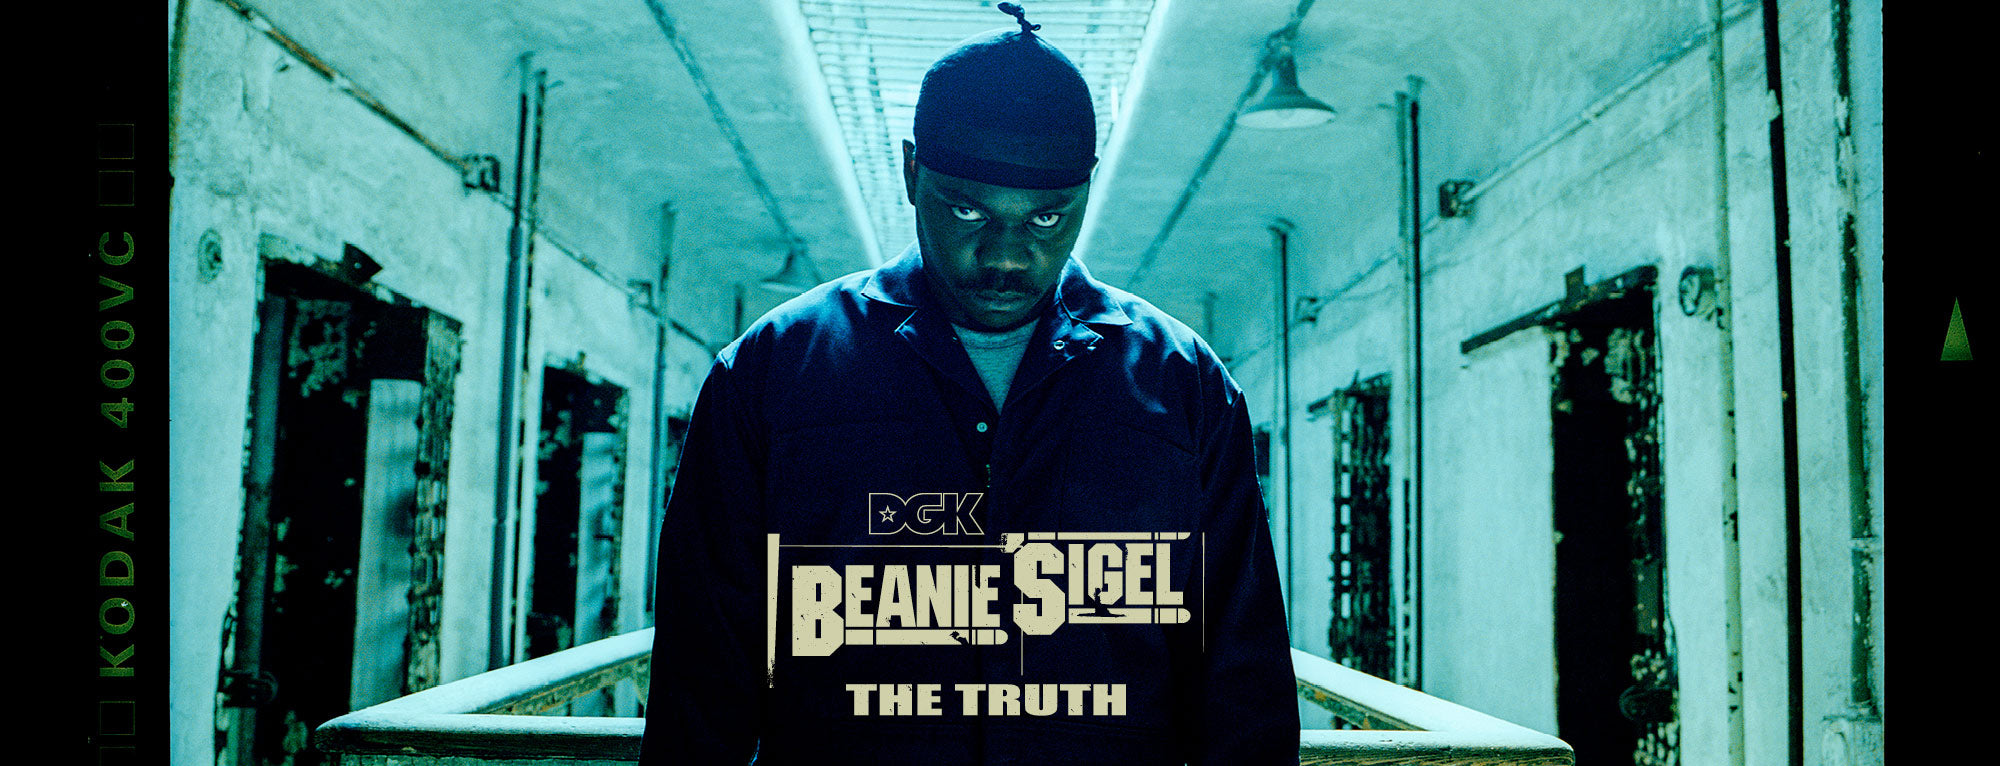 DGK Beanie Sigel The Truth